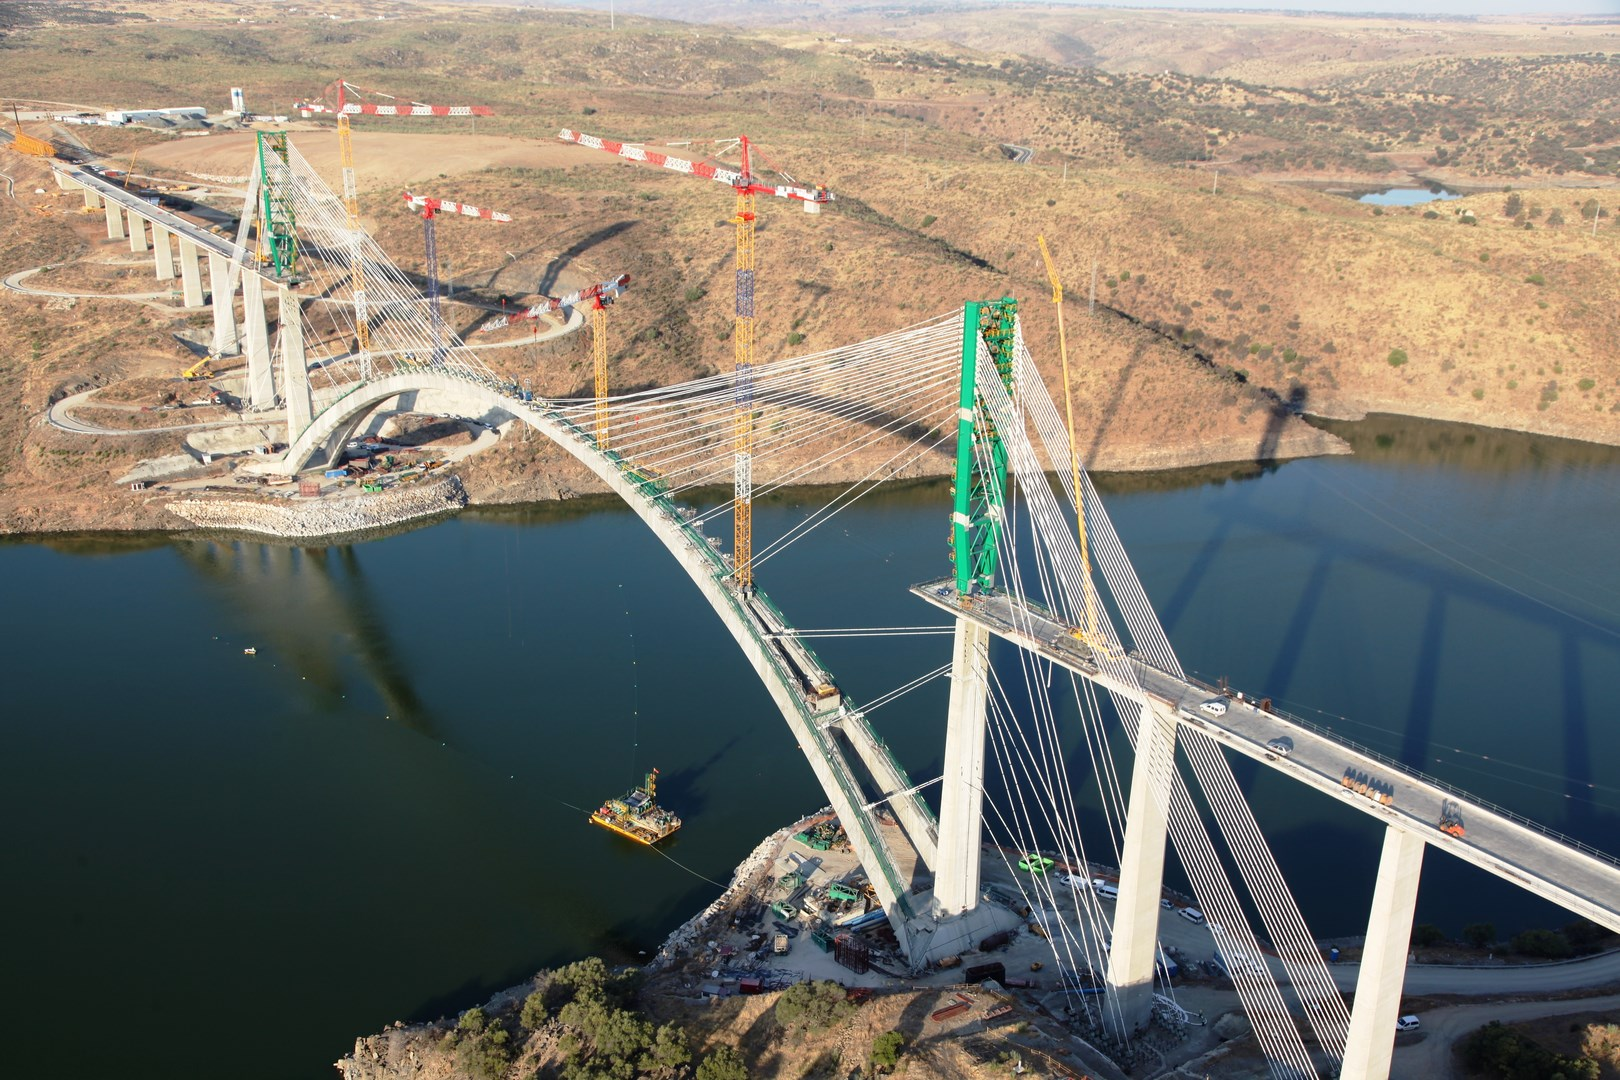 Construction of the Almonte Viaduct